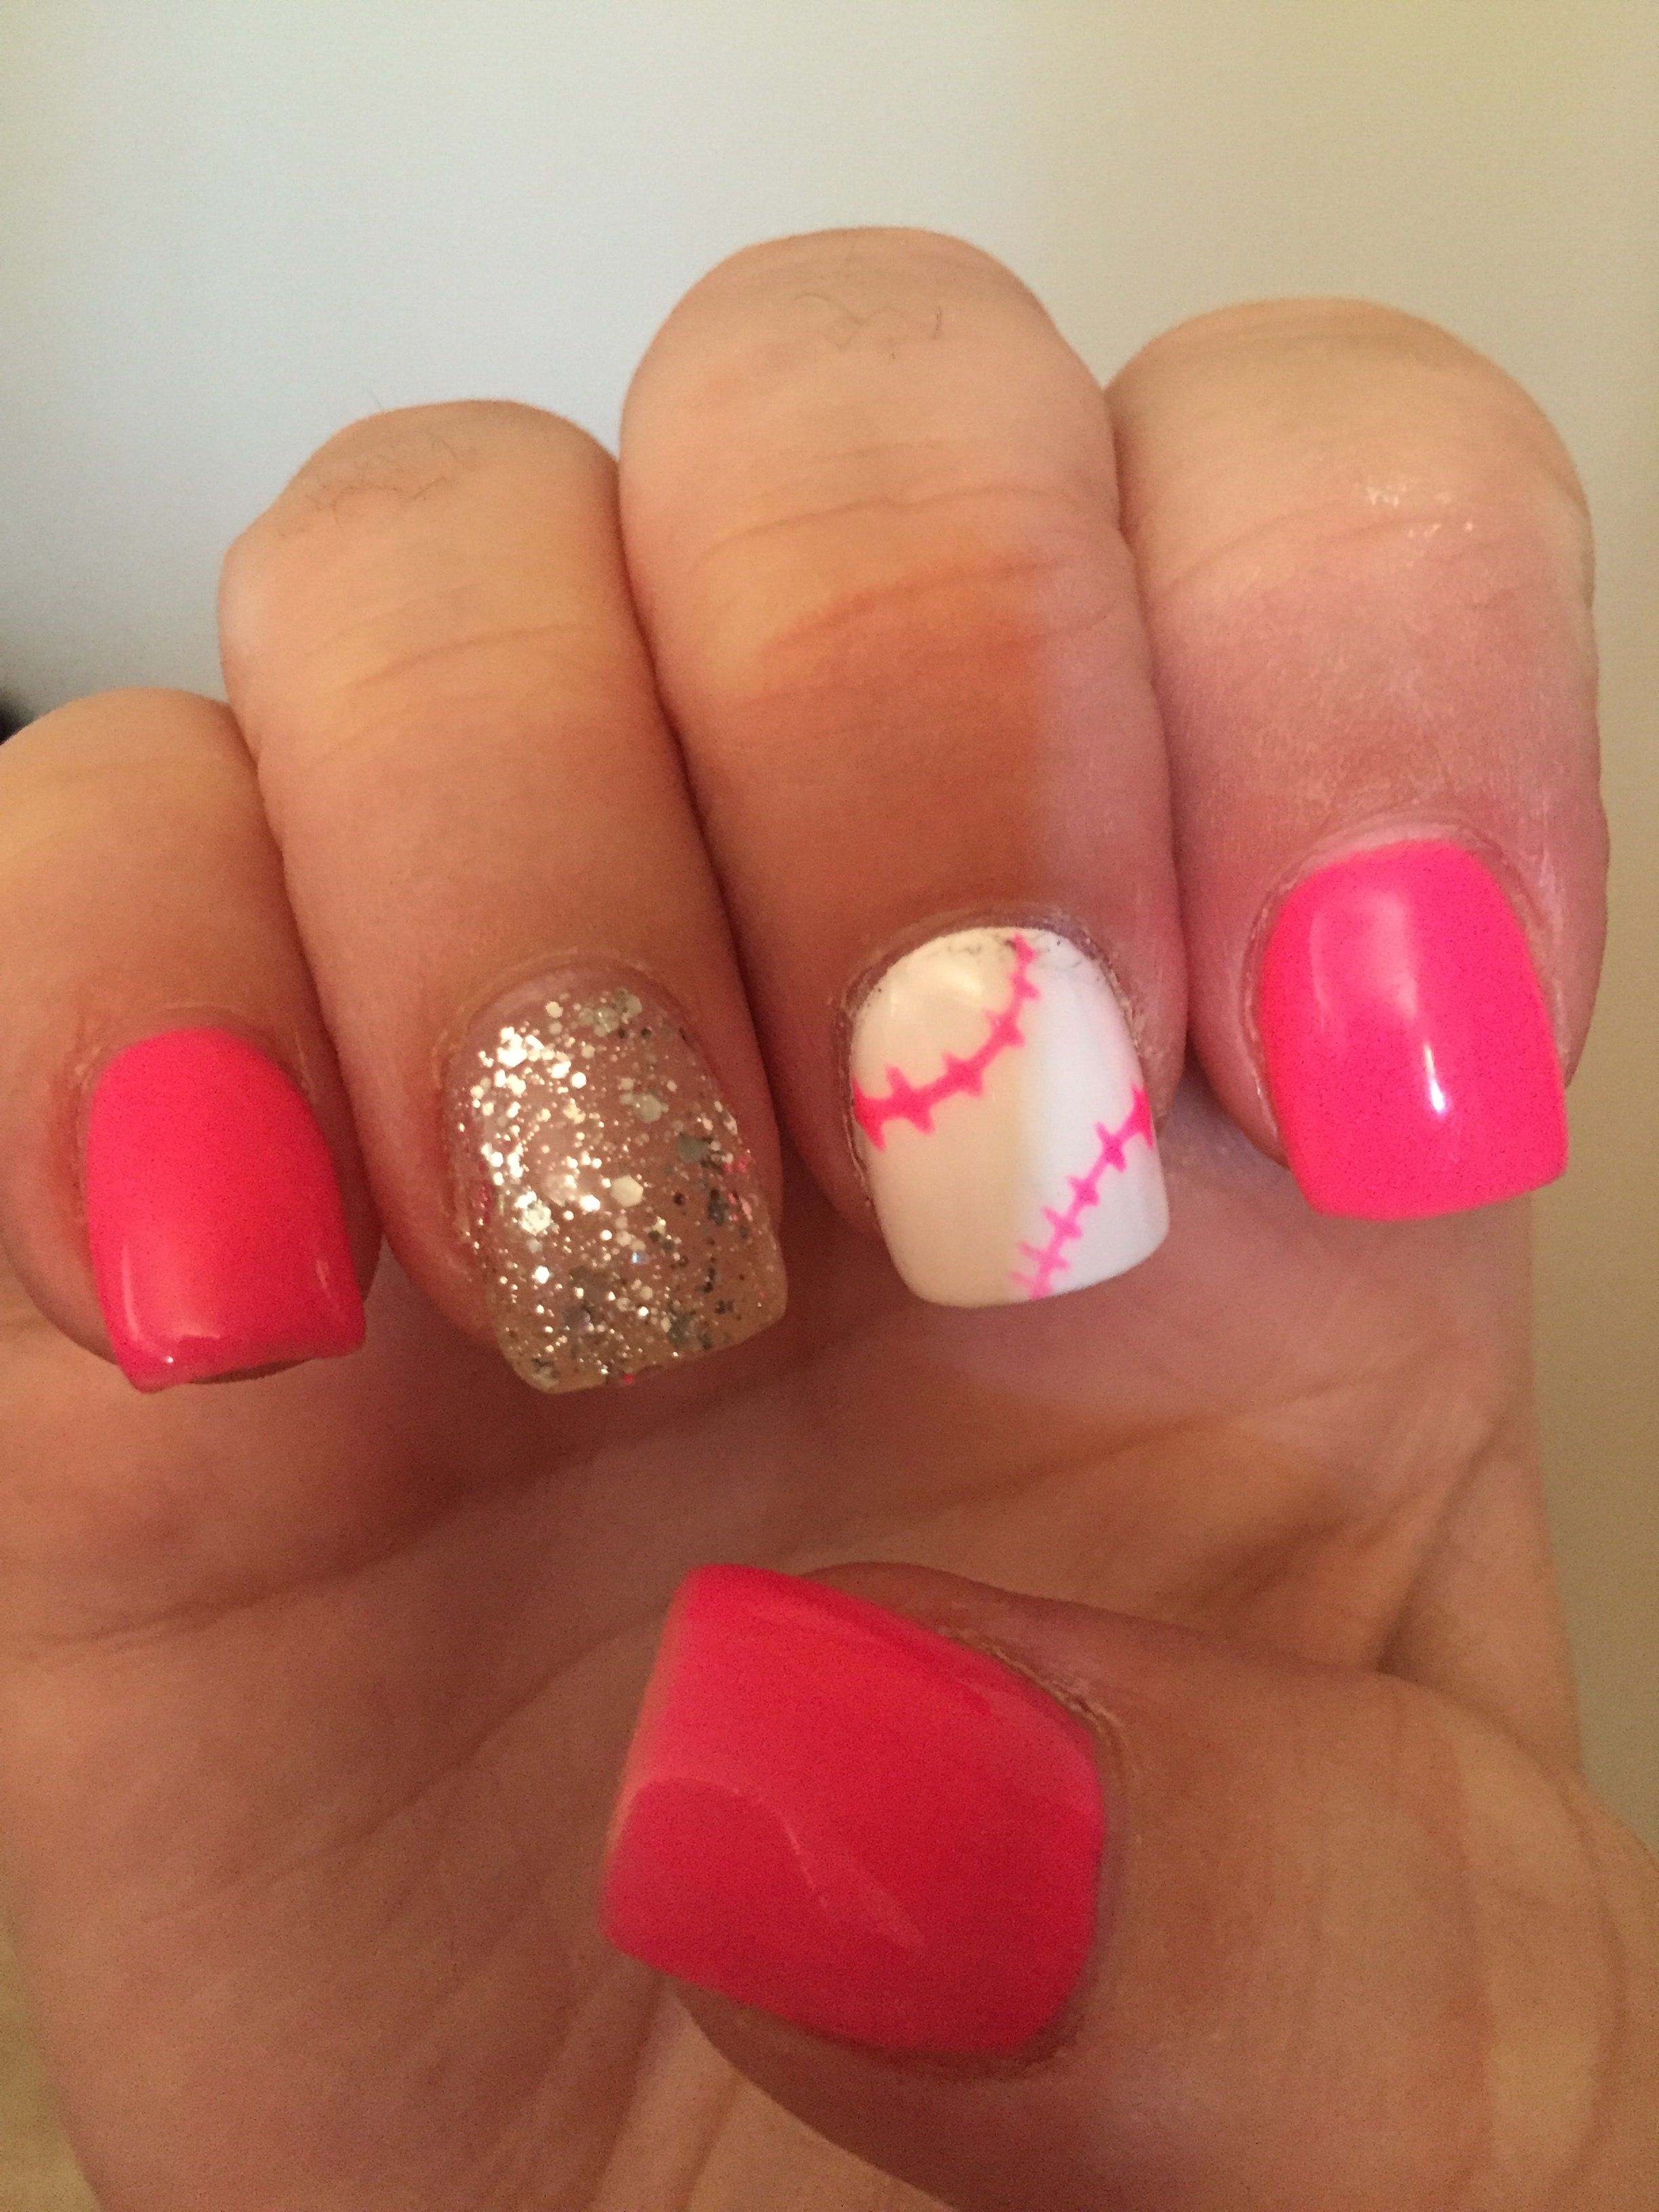 Pink softball nails with glitter. | Nails <3 :] | Pinterest ...